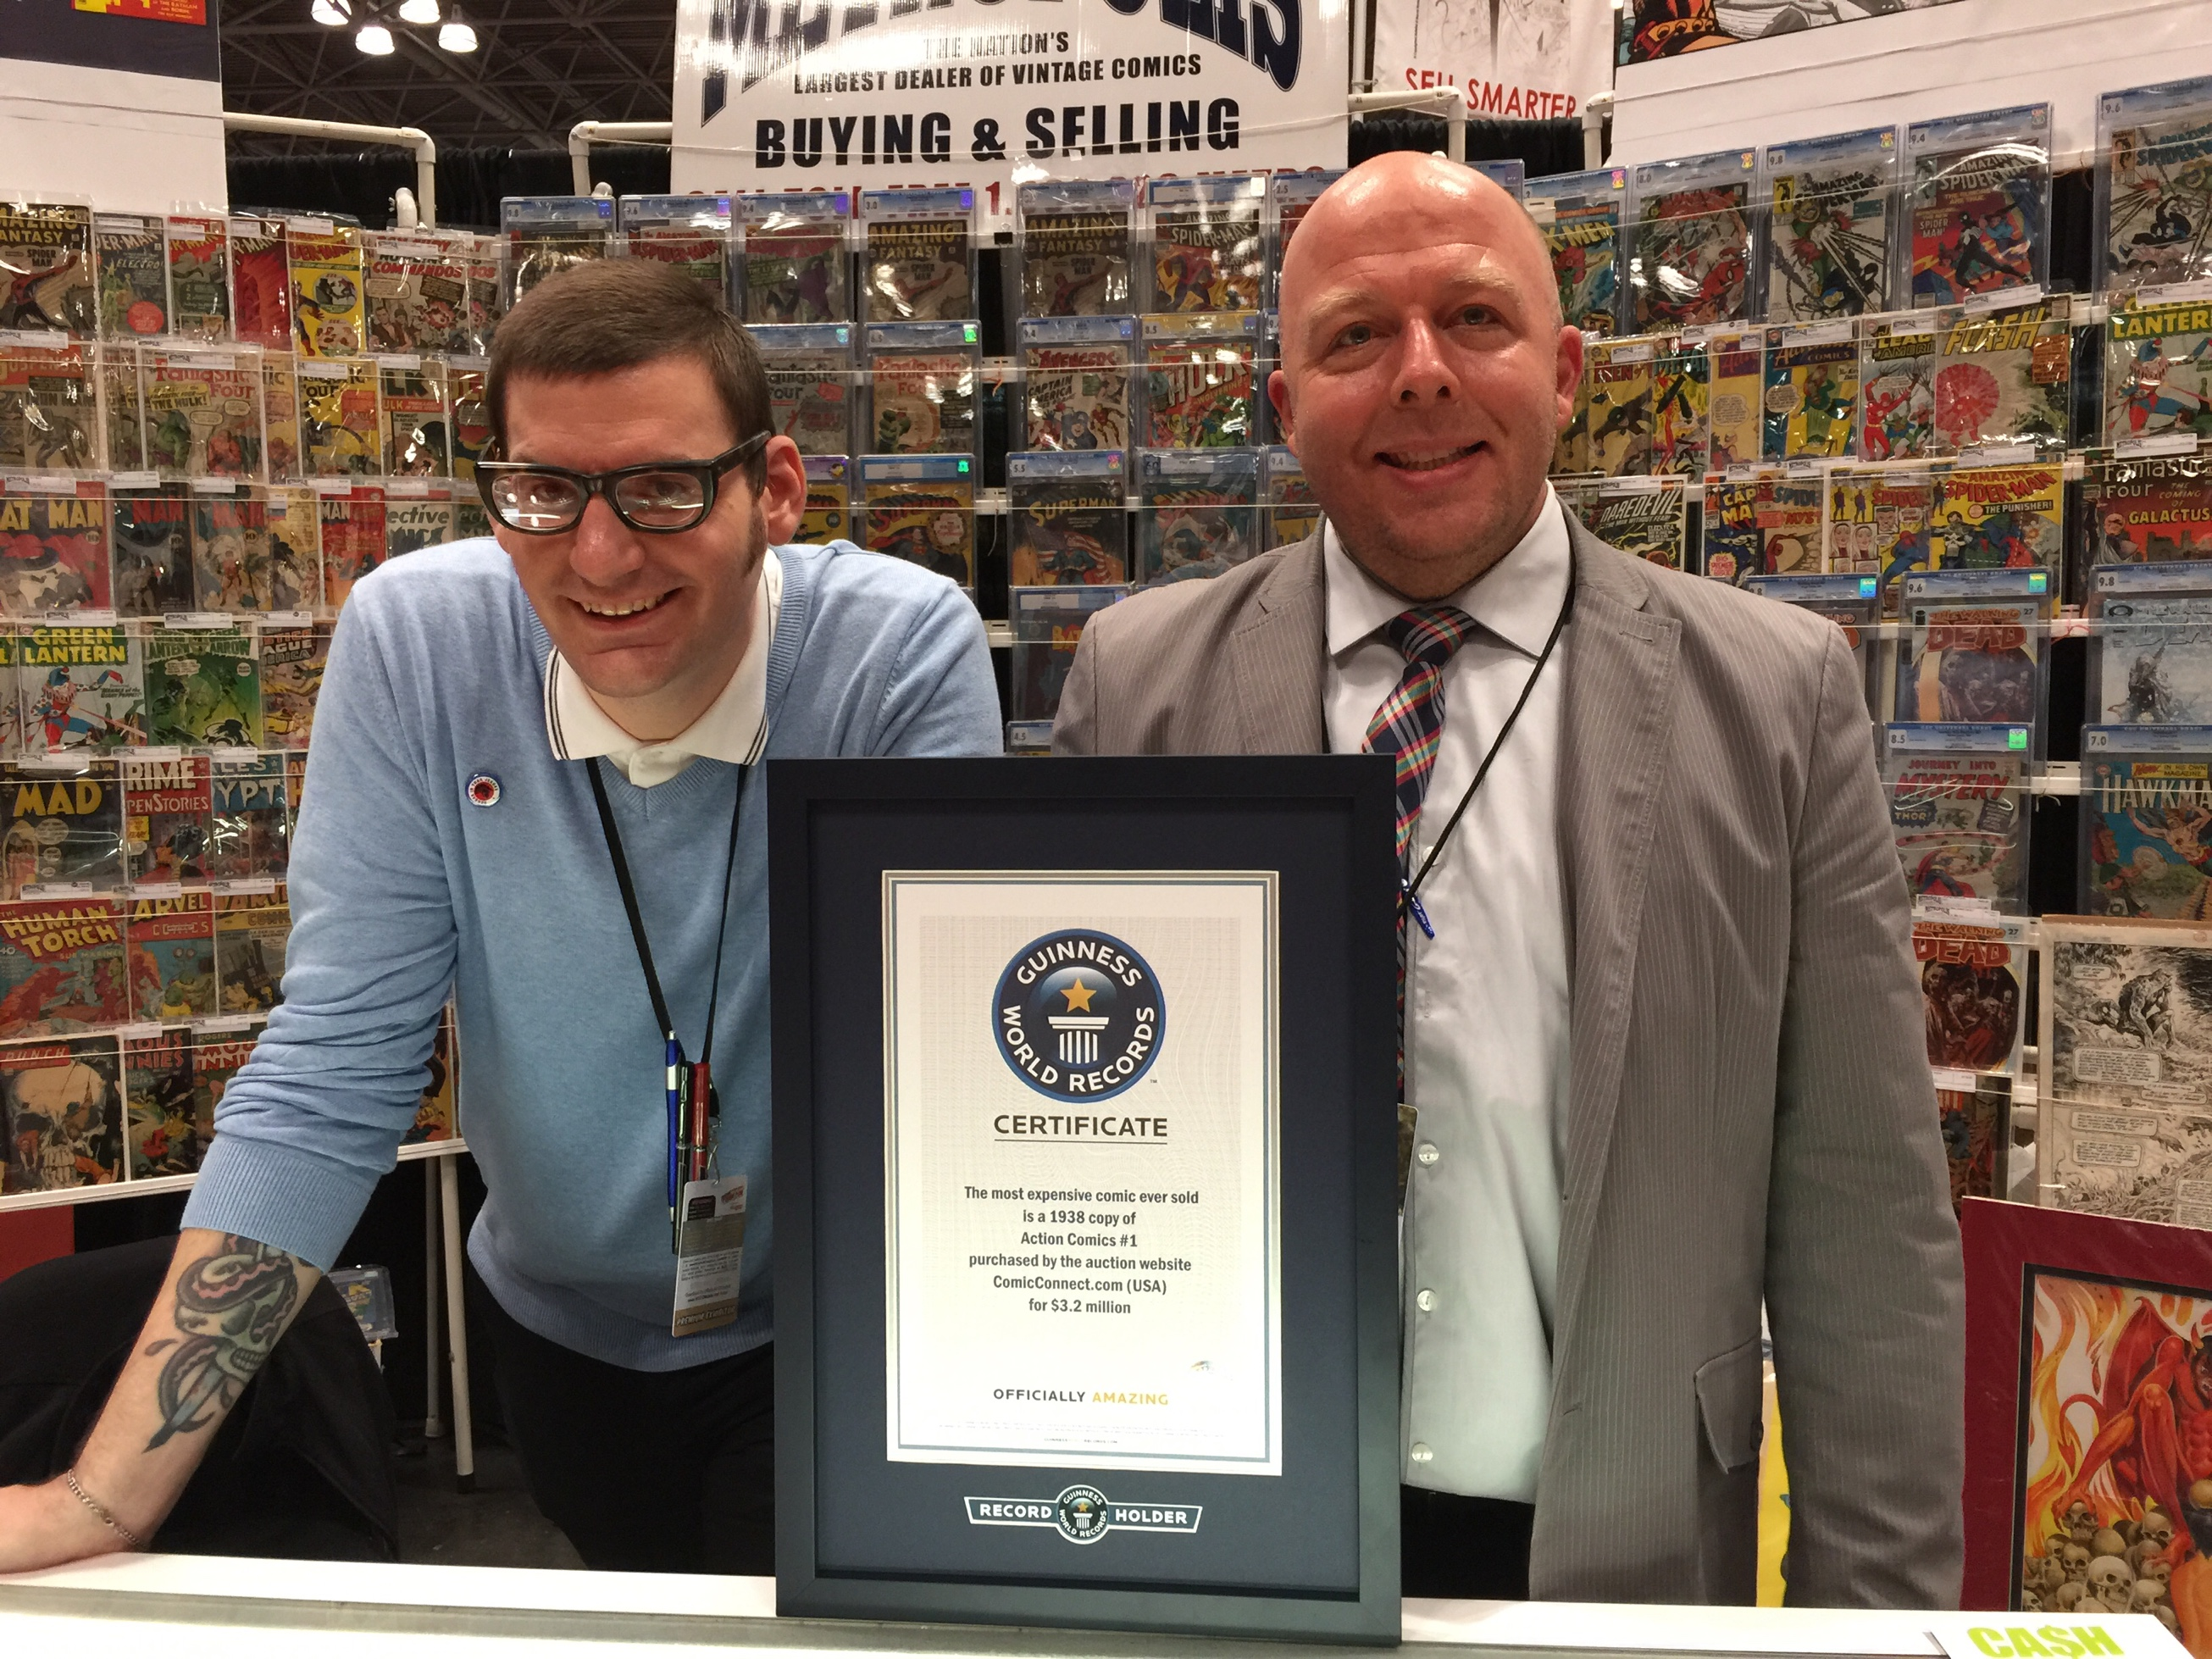 These guys brought a $3.2M comic to New York Comic Con